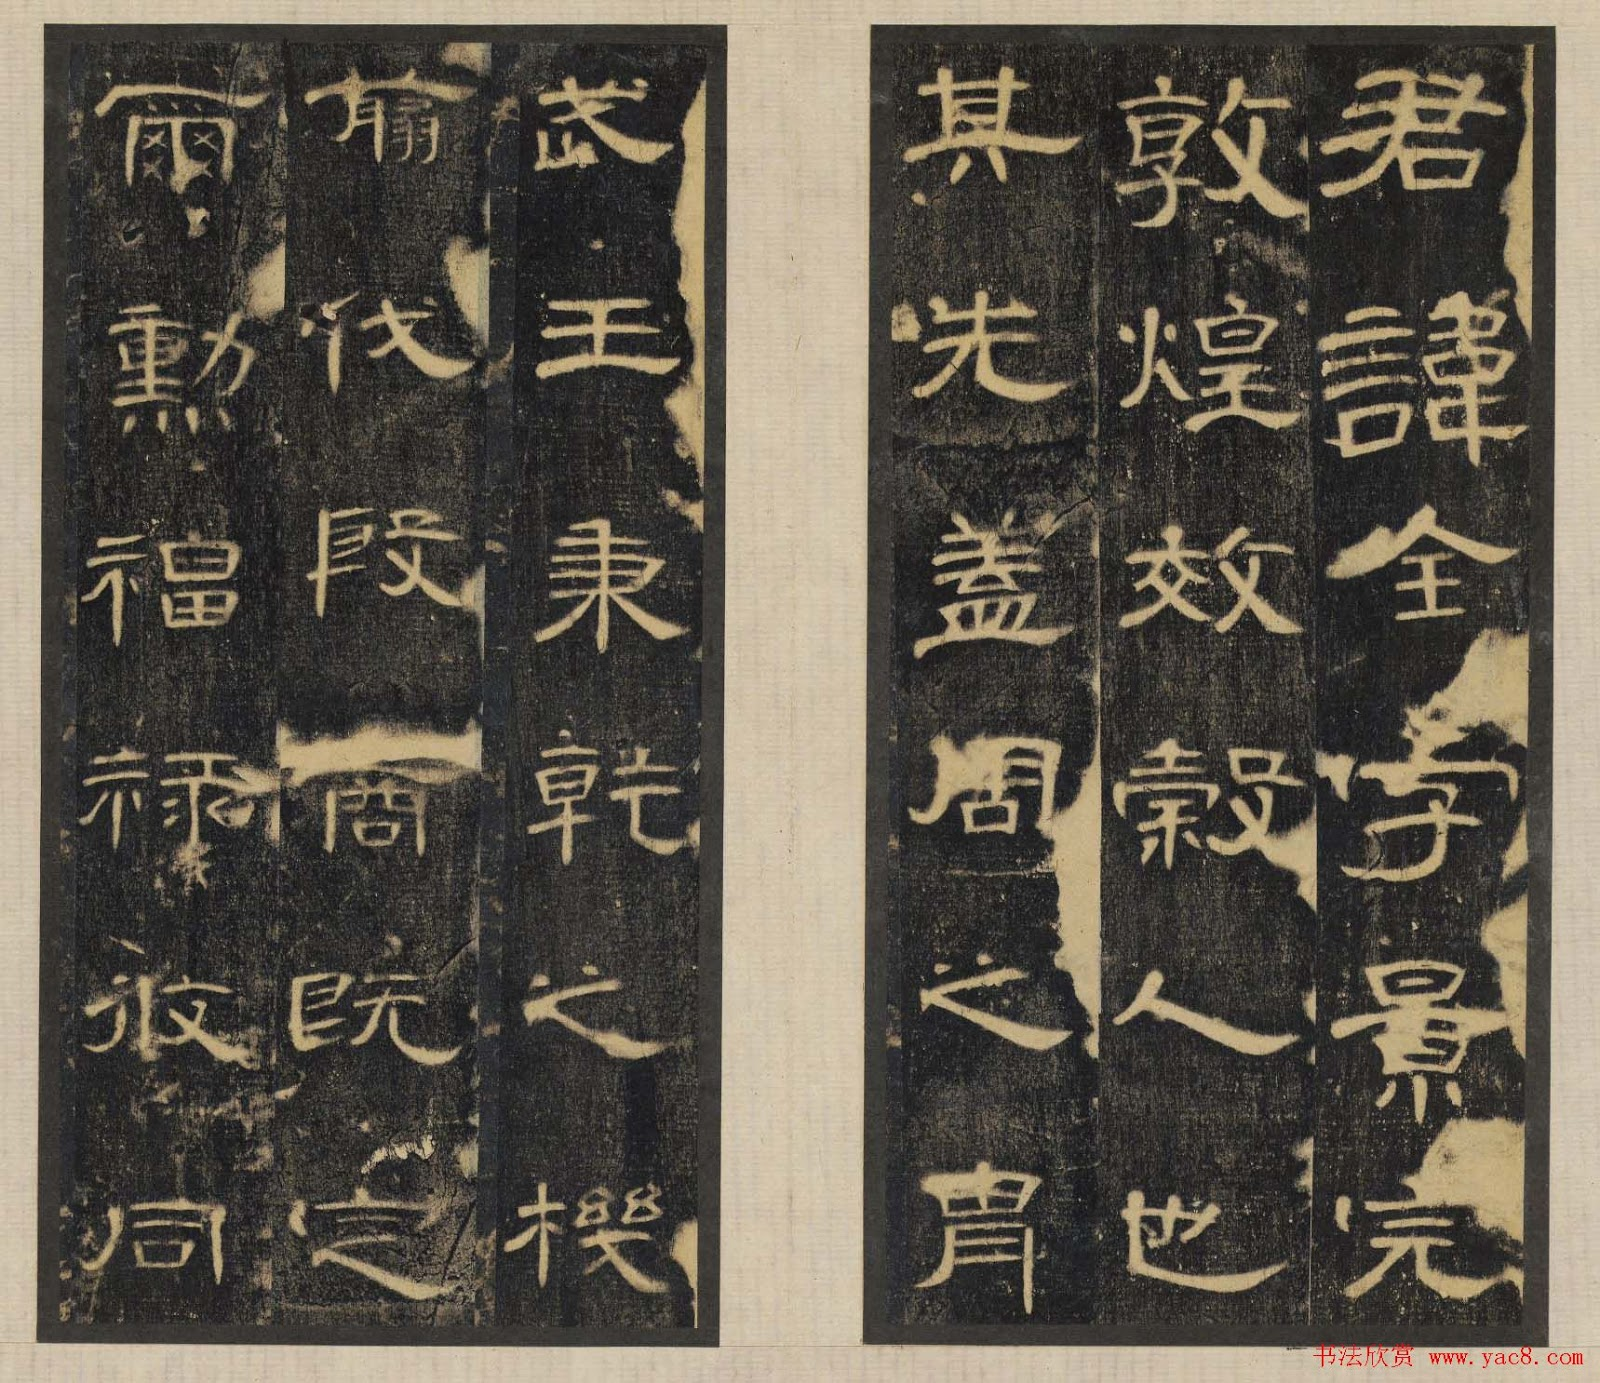 Chinese Calligraphy History Chinese Calligraphy History